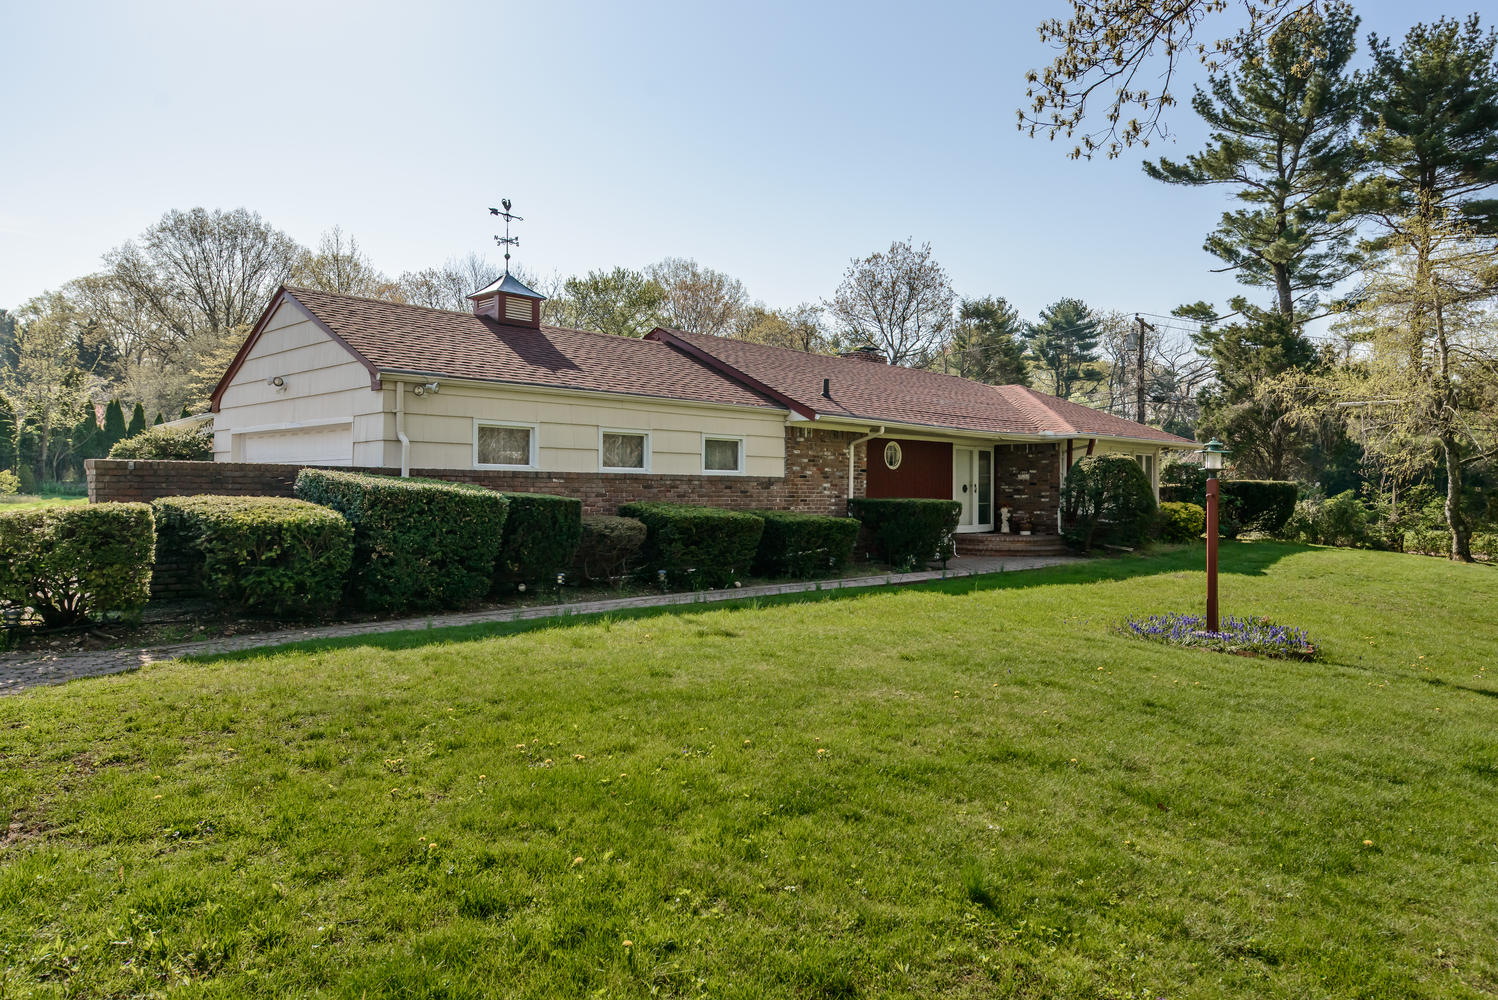 Single Family Home for Sale at Ranch 225 Glen Cove Rd Old Westbury, New York, 11568 United States